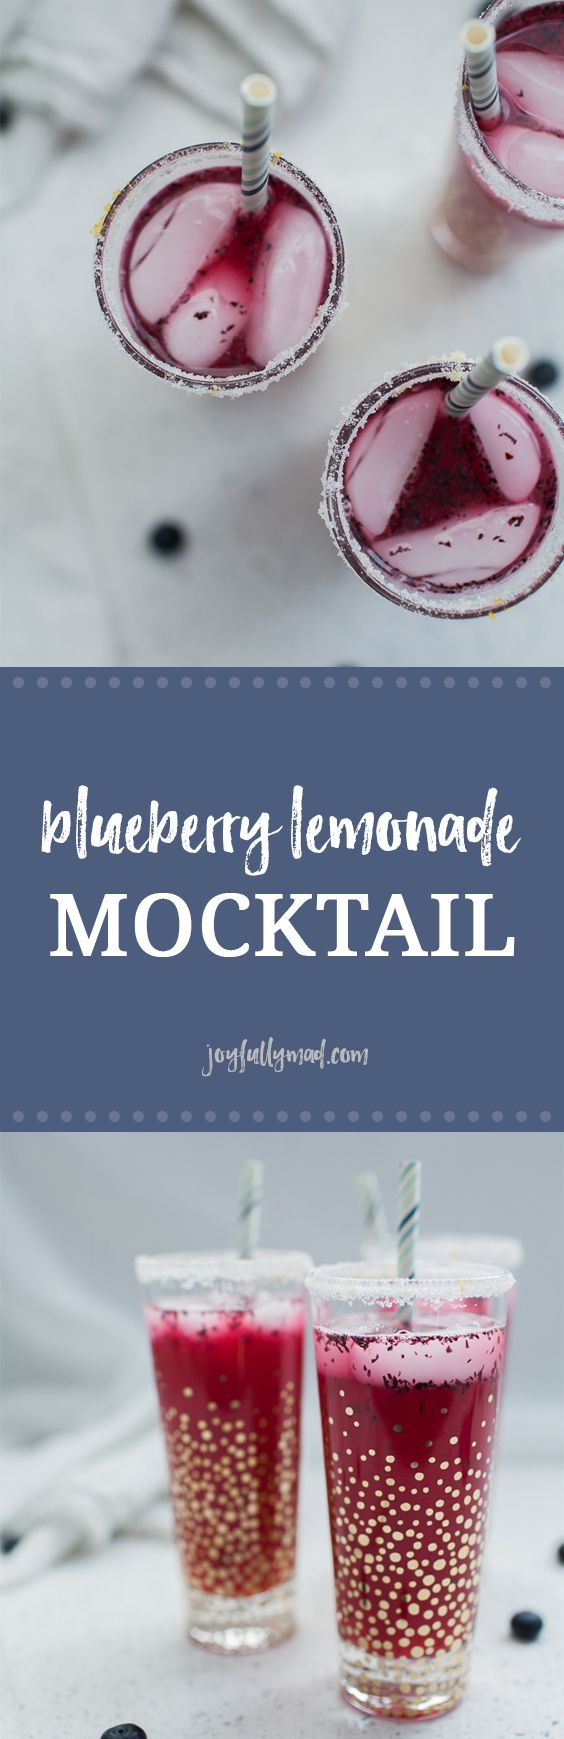 If you're looking for the perfect summer mocktail, this blueberry lemonade mocktail is sure to hit the spot! Whether you need a fancy drink for a party or just because, this blueberry lemonade mocktail is easy to make and has the perfect blend of tart and